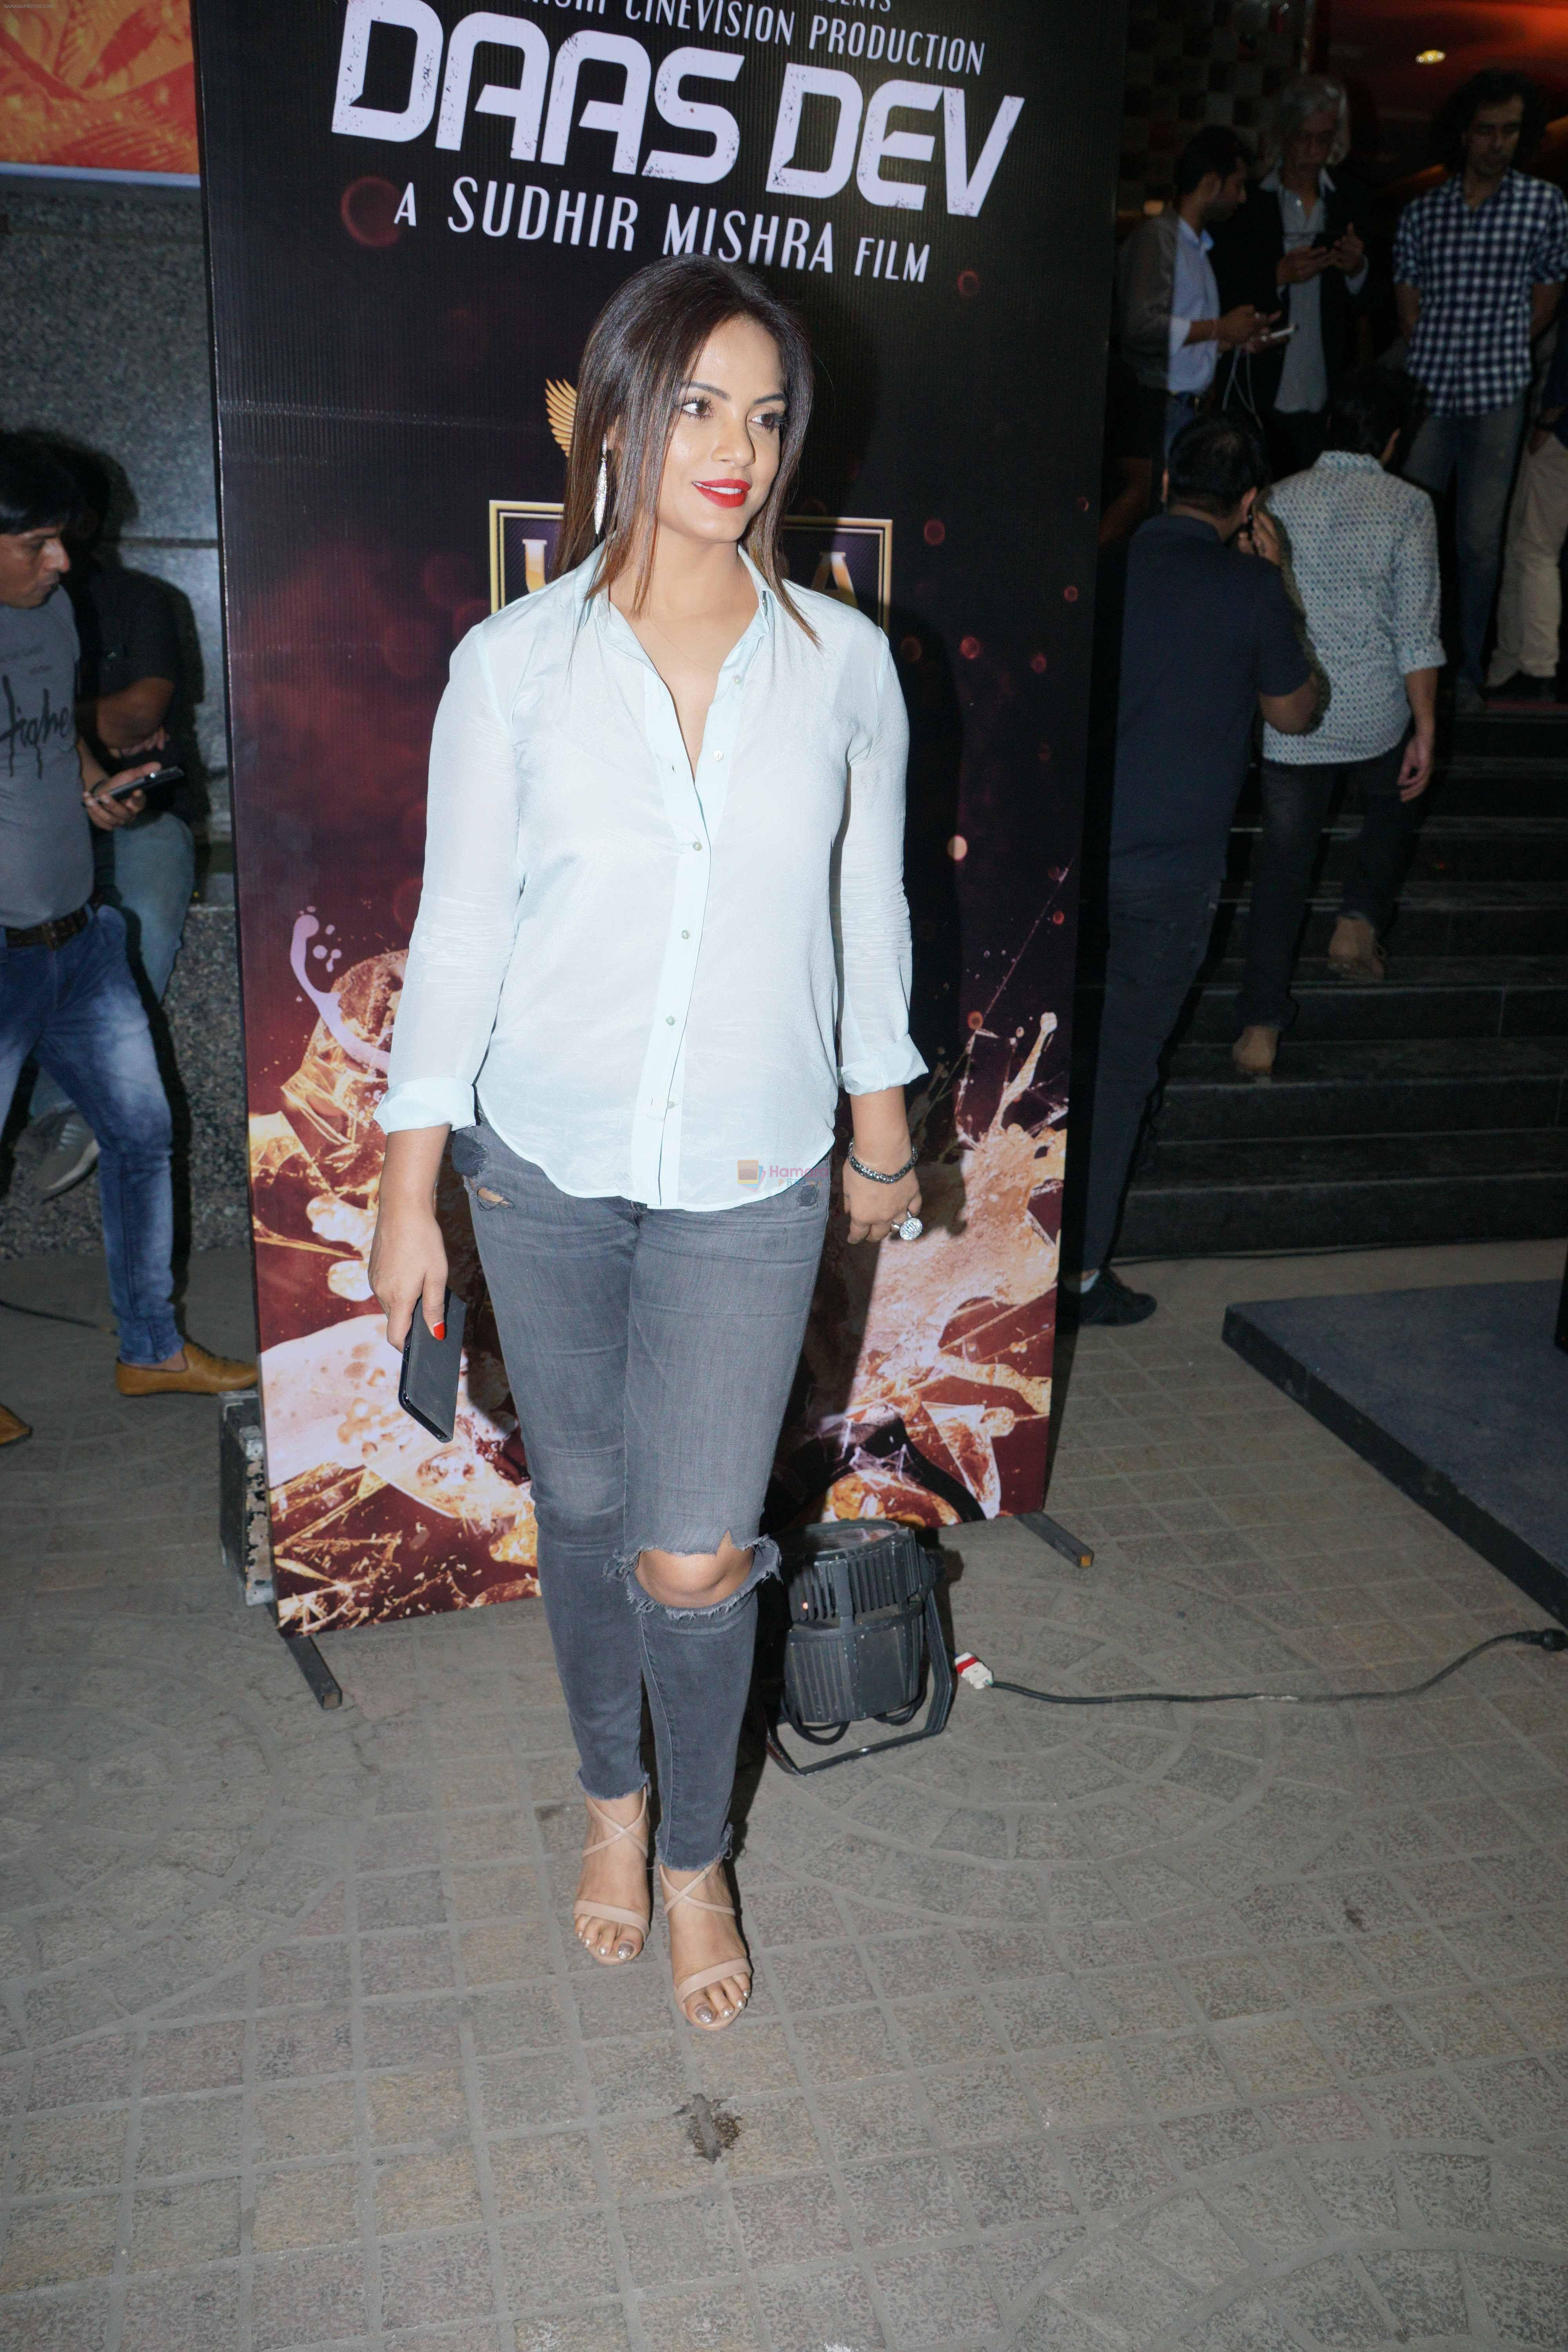 Neetu Chandra at the Premiere of film Daasdev at pvr ecx in andheri , mumbai on 25th April 2018